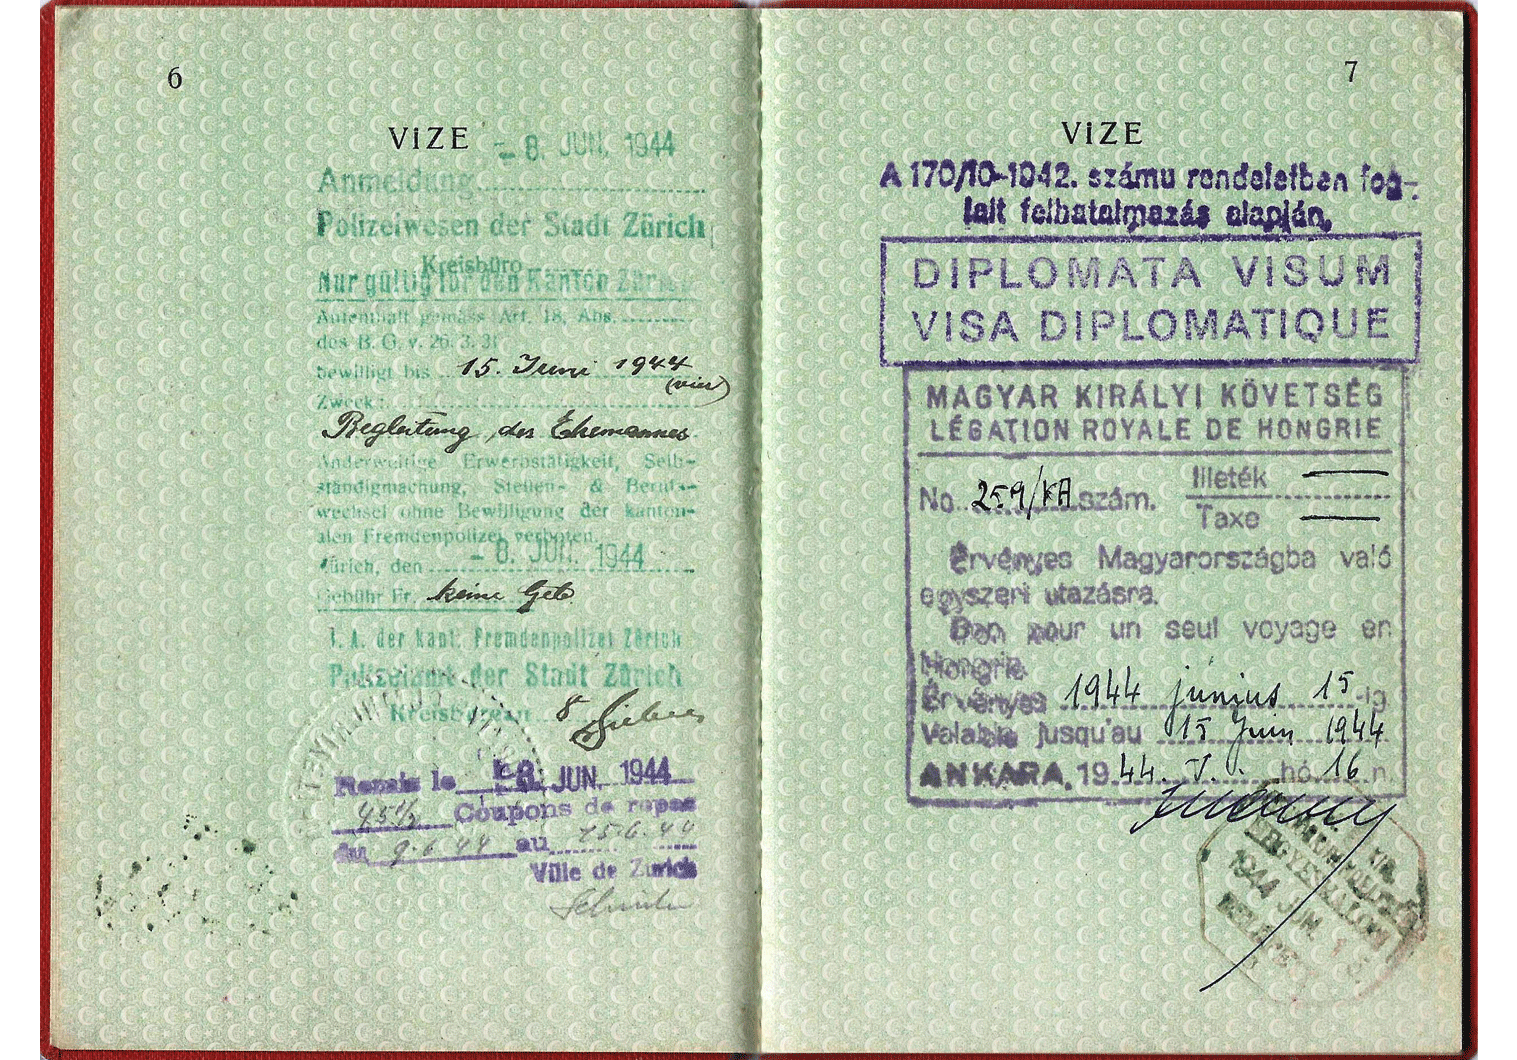 WW2 Diplomatic passport.